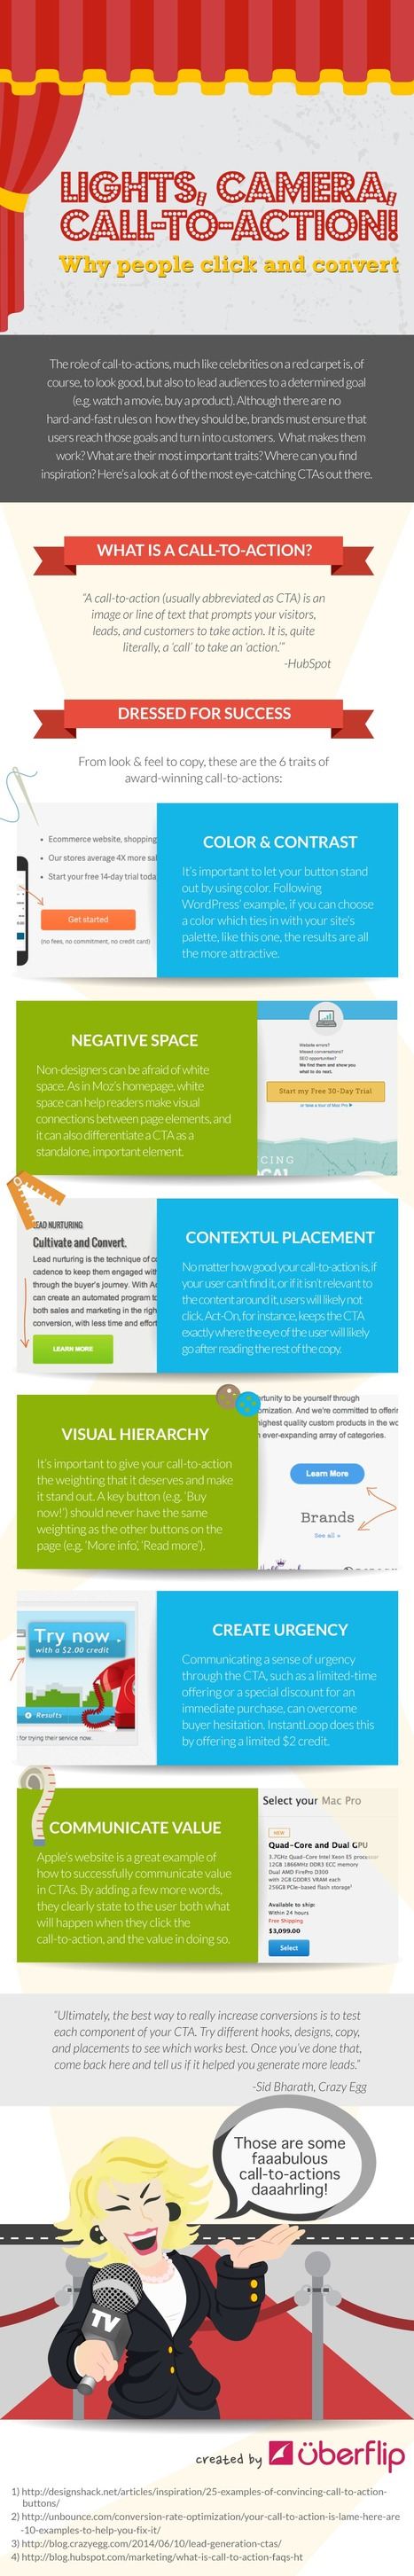 What Makes People Click and Convert [Infographic] | Content Creation, Curation, Management | Scoop.it